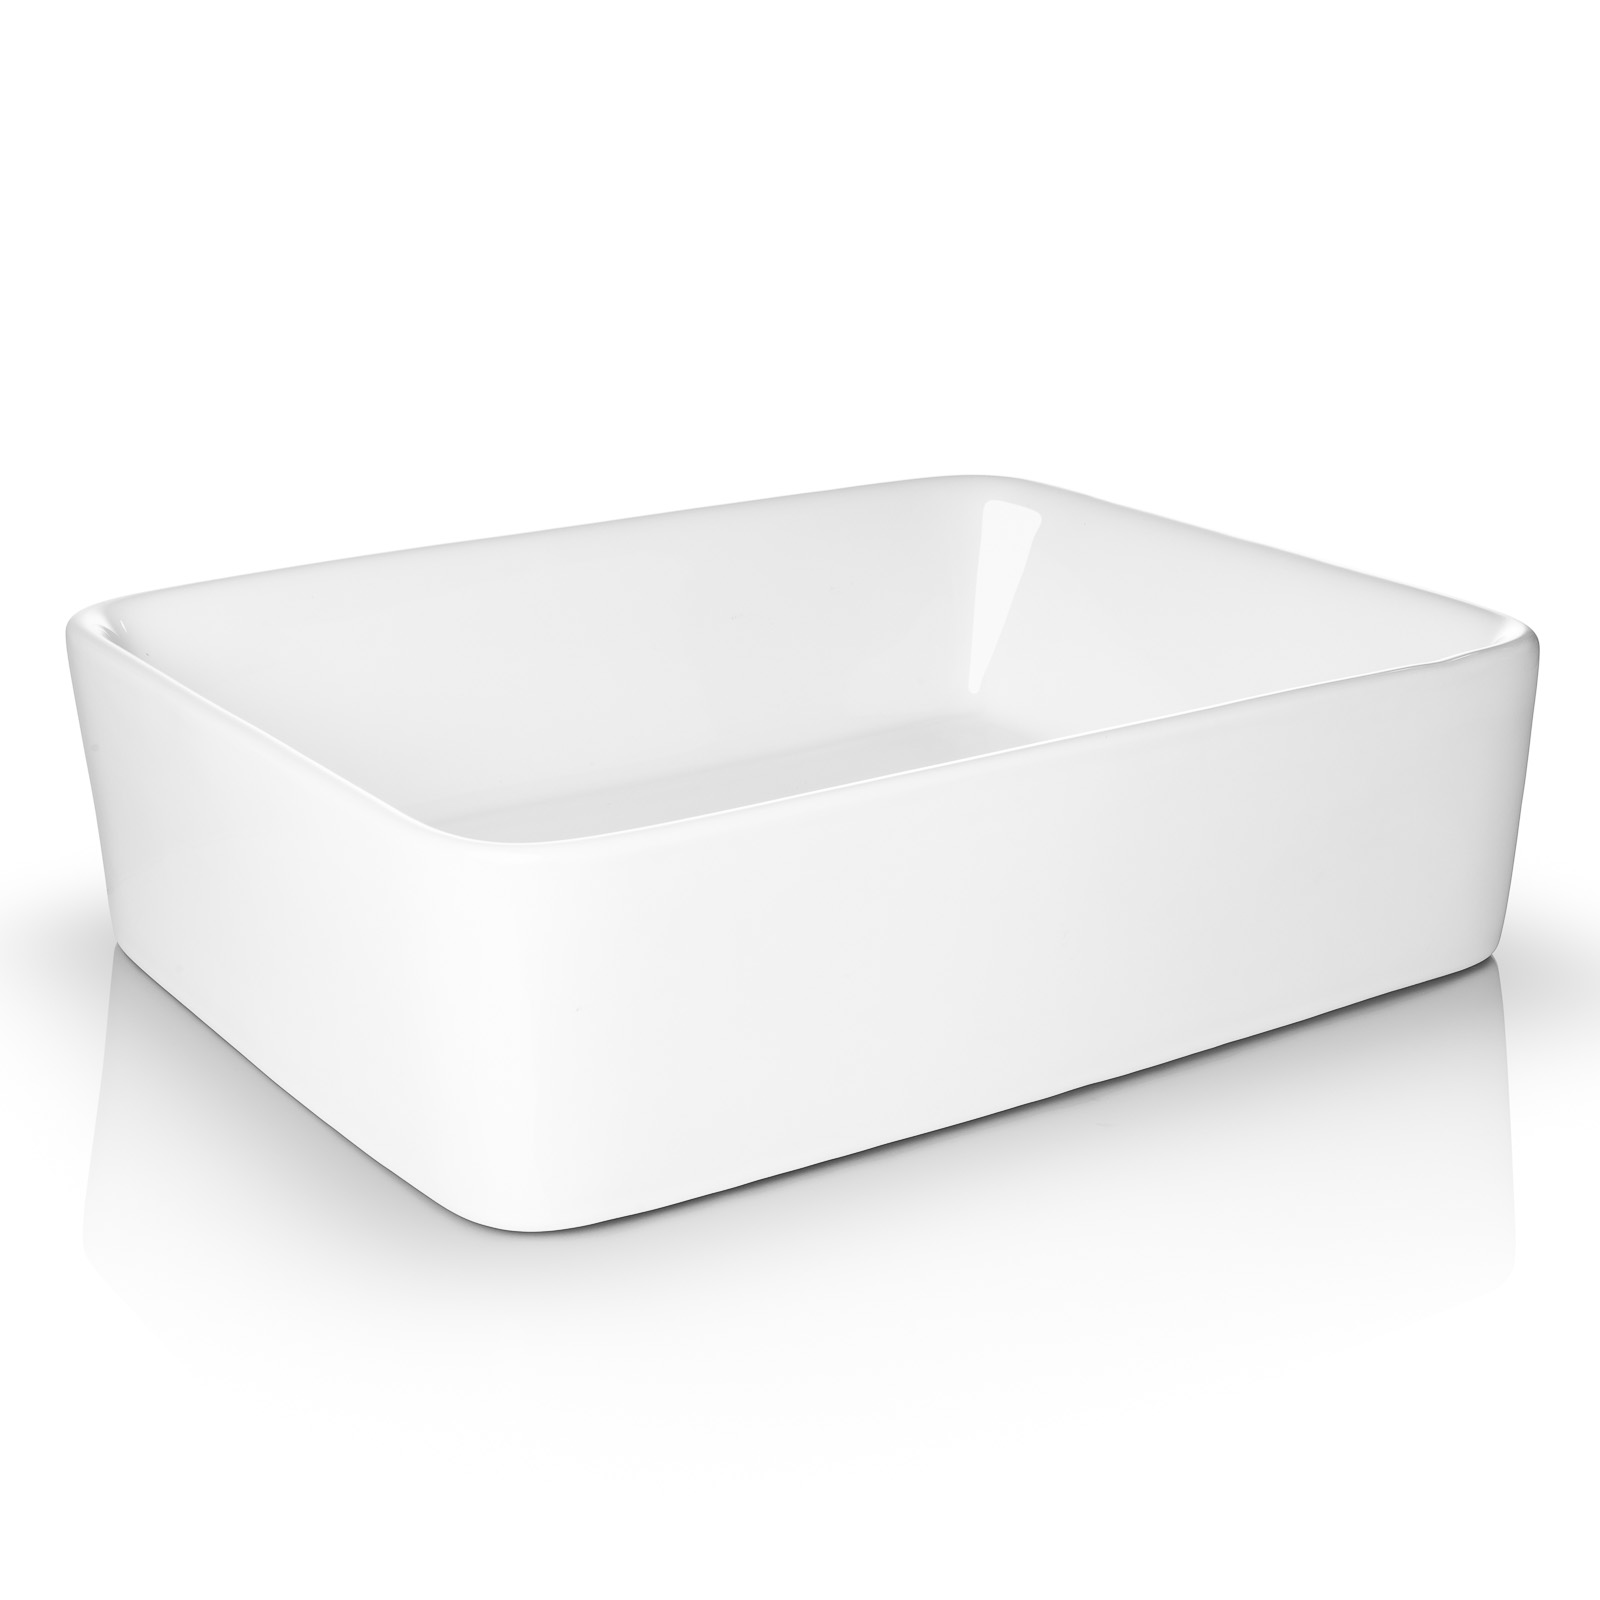 Miligore 19 Quot X 15 Quot Rectangular White Ceramic Vessel Sink